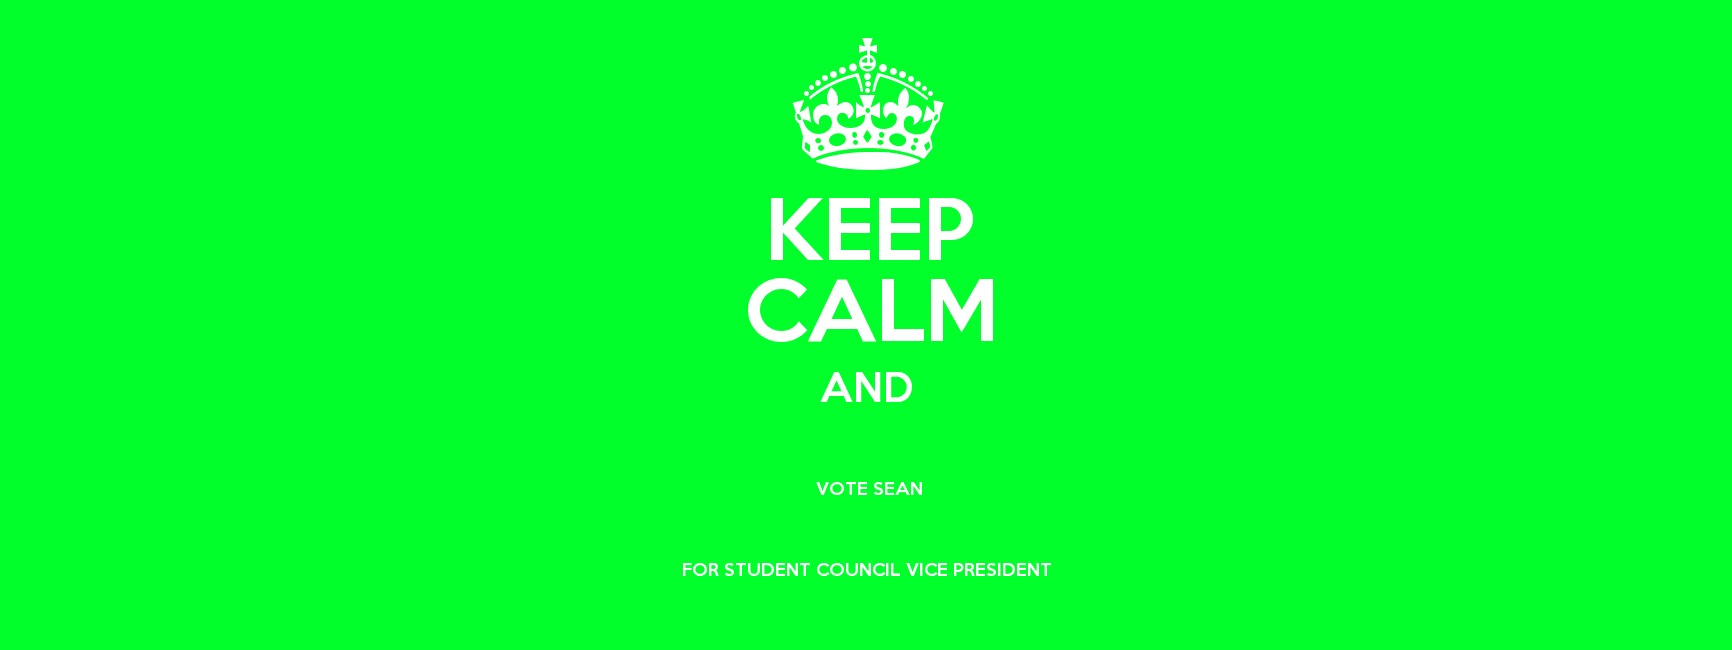 KEEP CALM AND VOTE SEAN FOR STUDENT COUNCIL VICE PRESIDENT - Keep ...